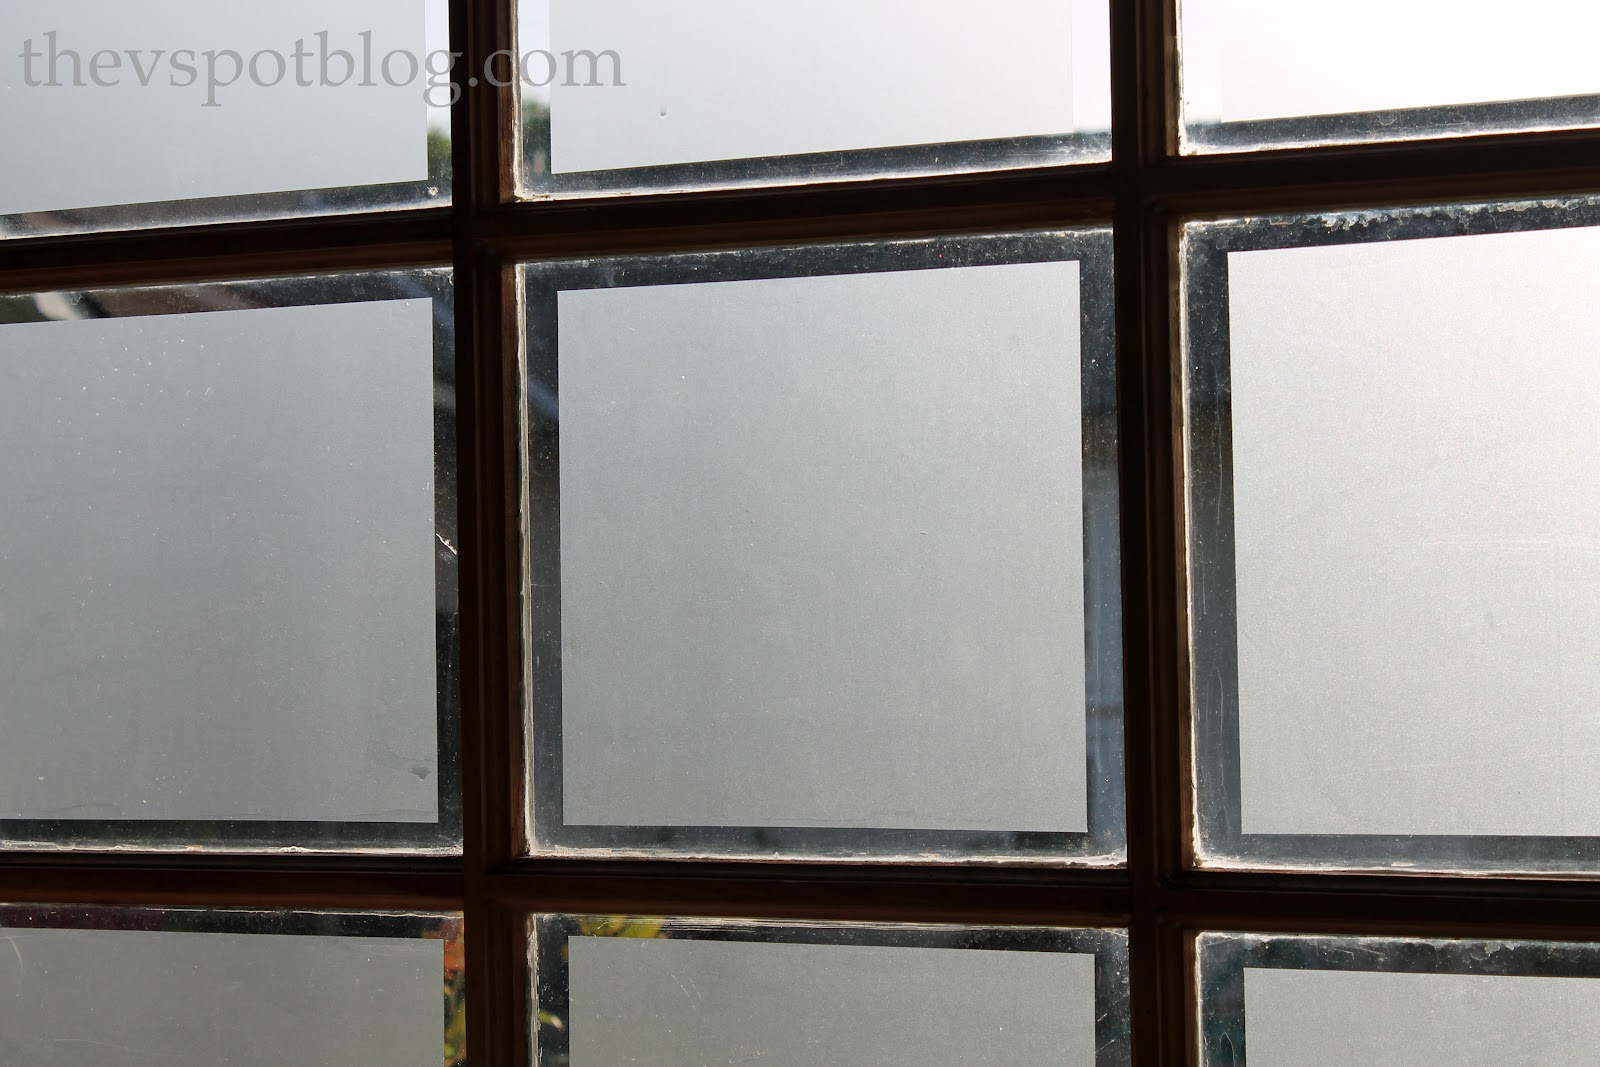 Frosted glass front door - Frosted Glass Window Film Adds Privacy To Garage Windows